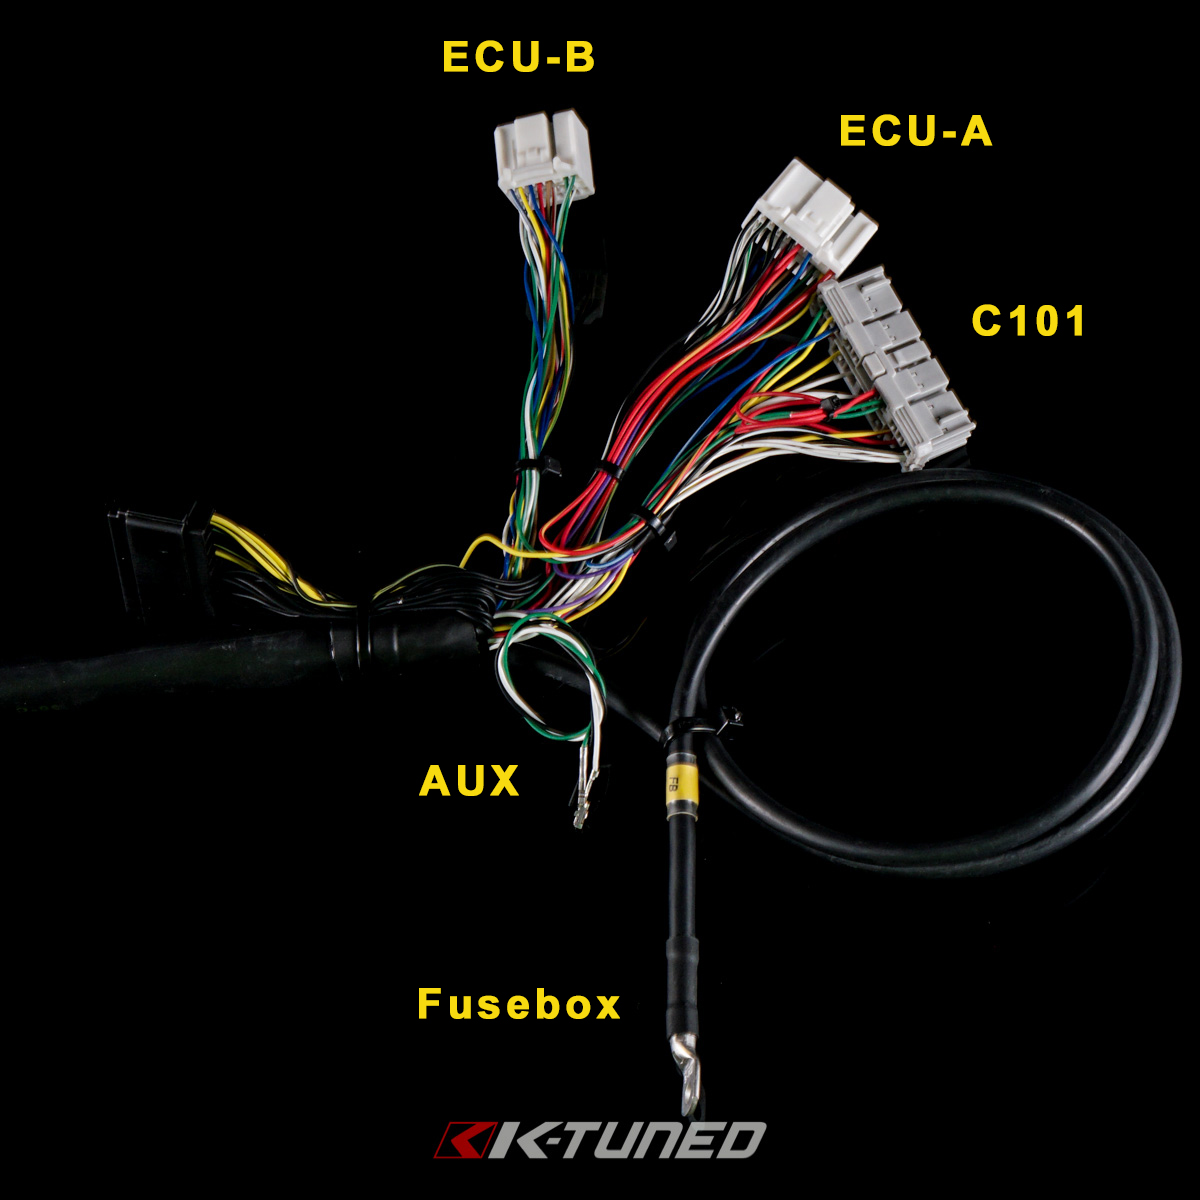 KTH 204 ENG_017 k series tucked engine harness rsx tucked wire harness at soozxer.org